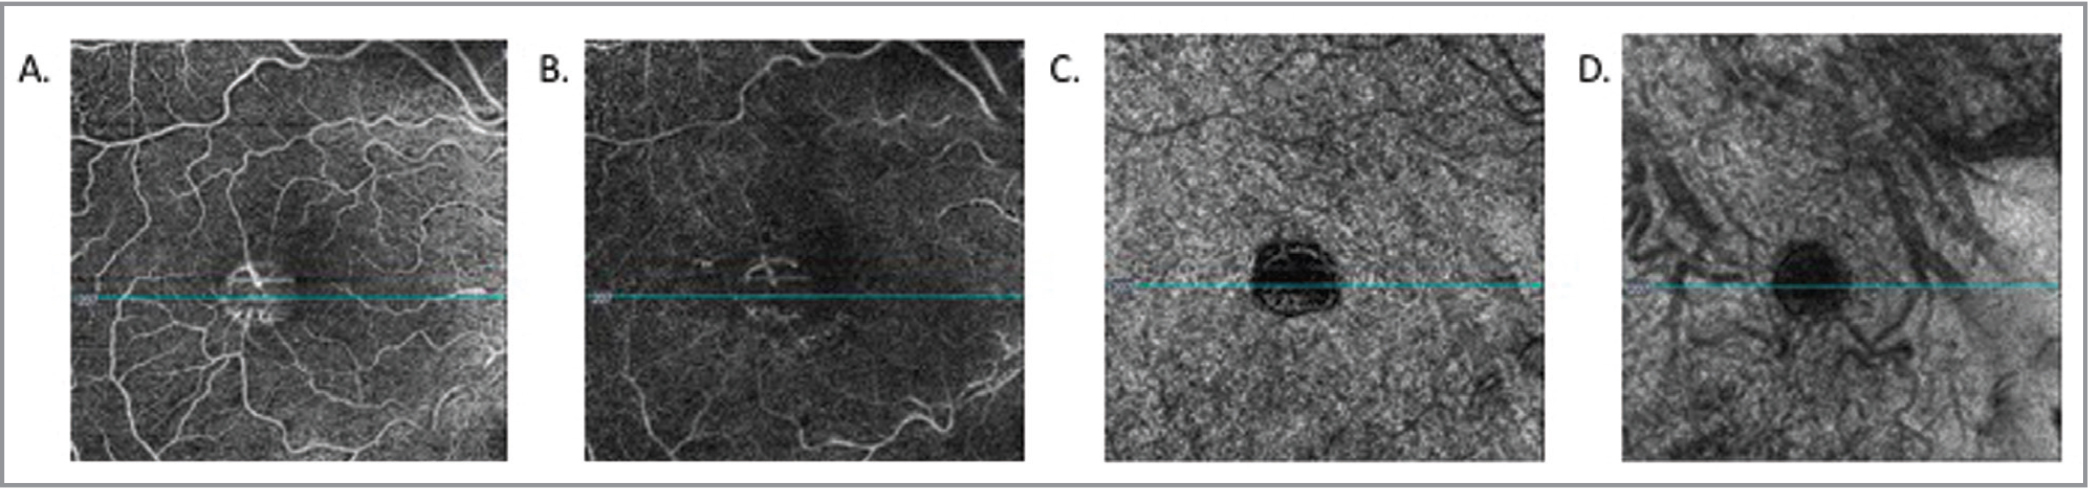 (A) Optical coherence tomography angiography (OCTA) of the inner retina shows vascular flow to the central lesion. (B) OCTA of the deep retina does not show any flow of the deep capillary plexus into or toward the lesion. (C,D) OCTA of the choriocapillaris and choroid show blockage from the lesion of the underlying blood flow.